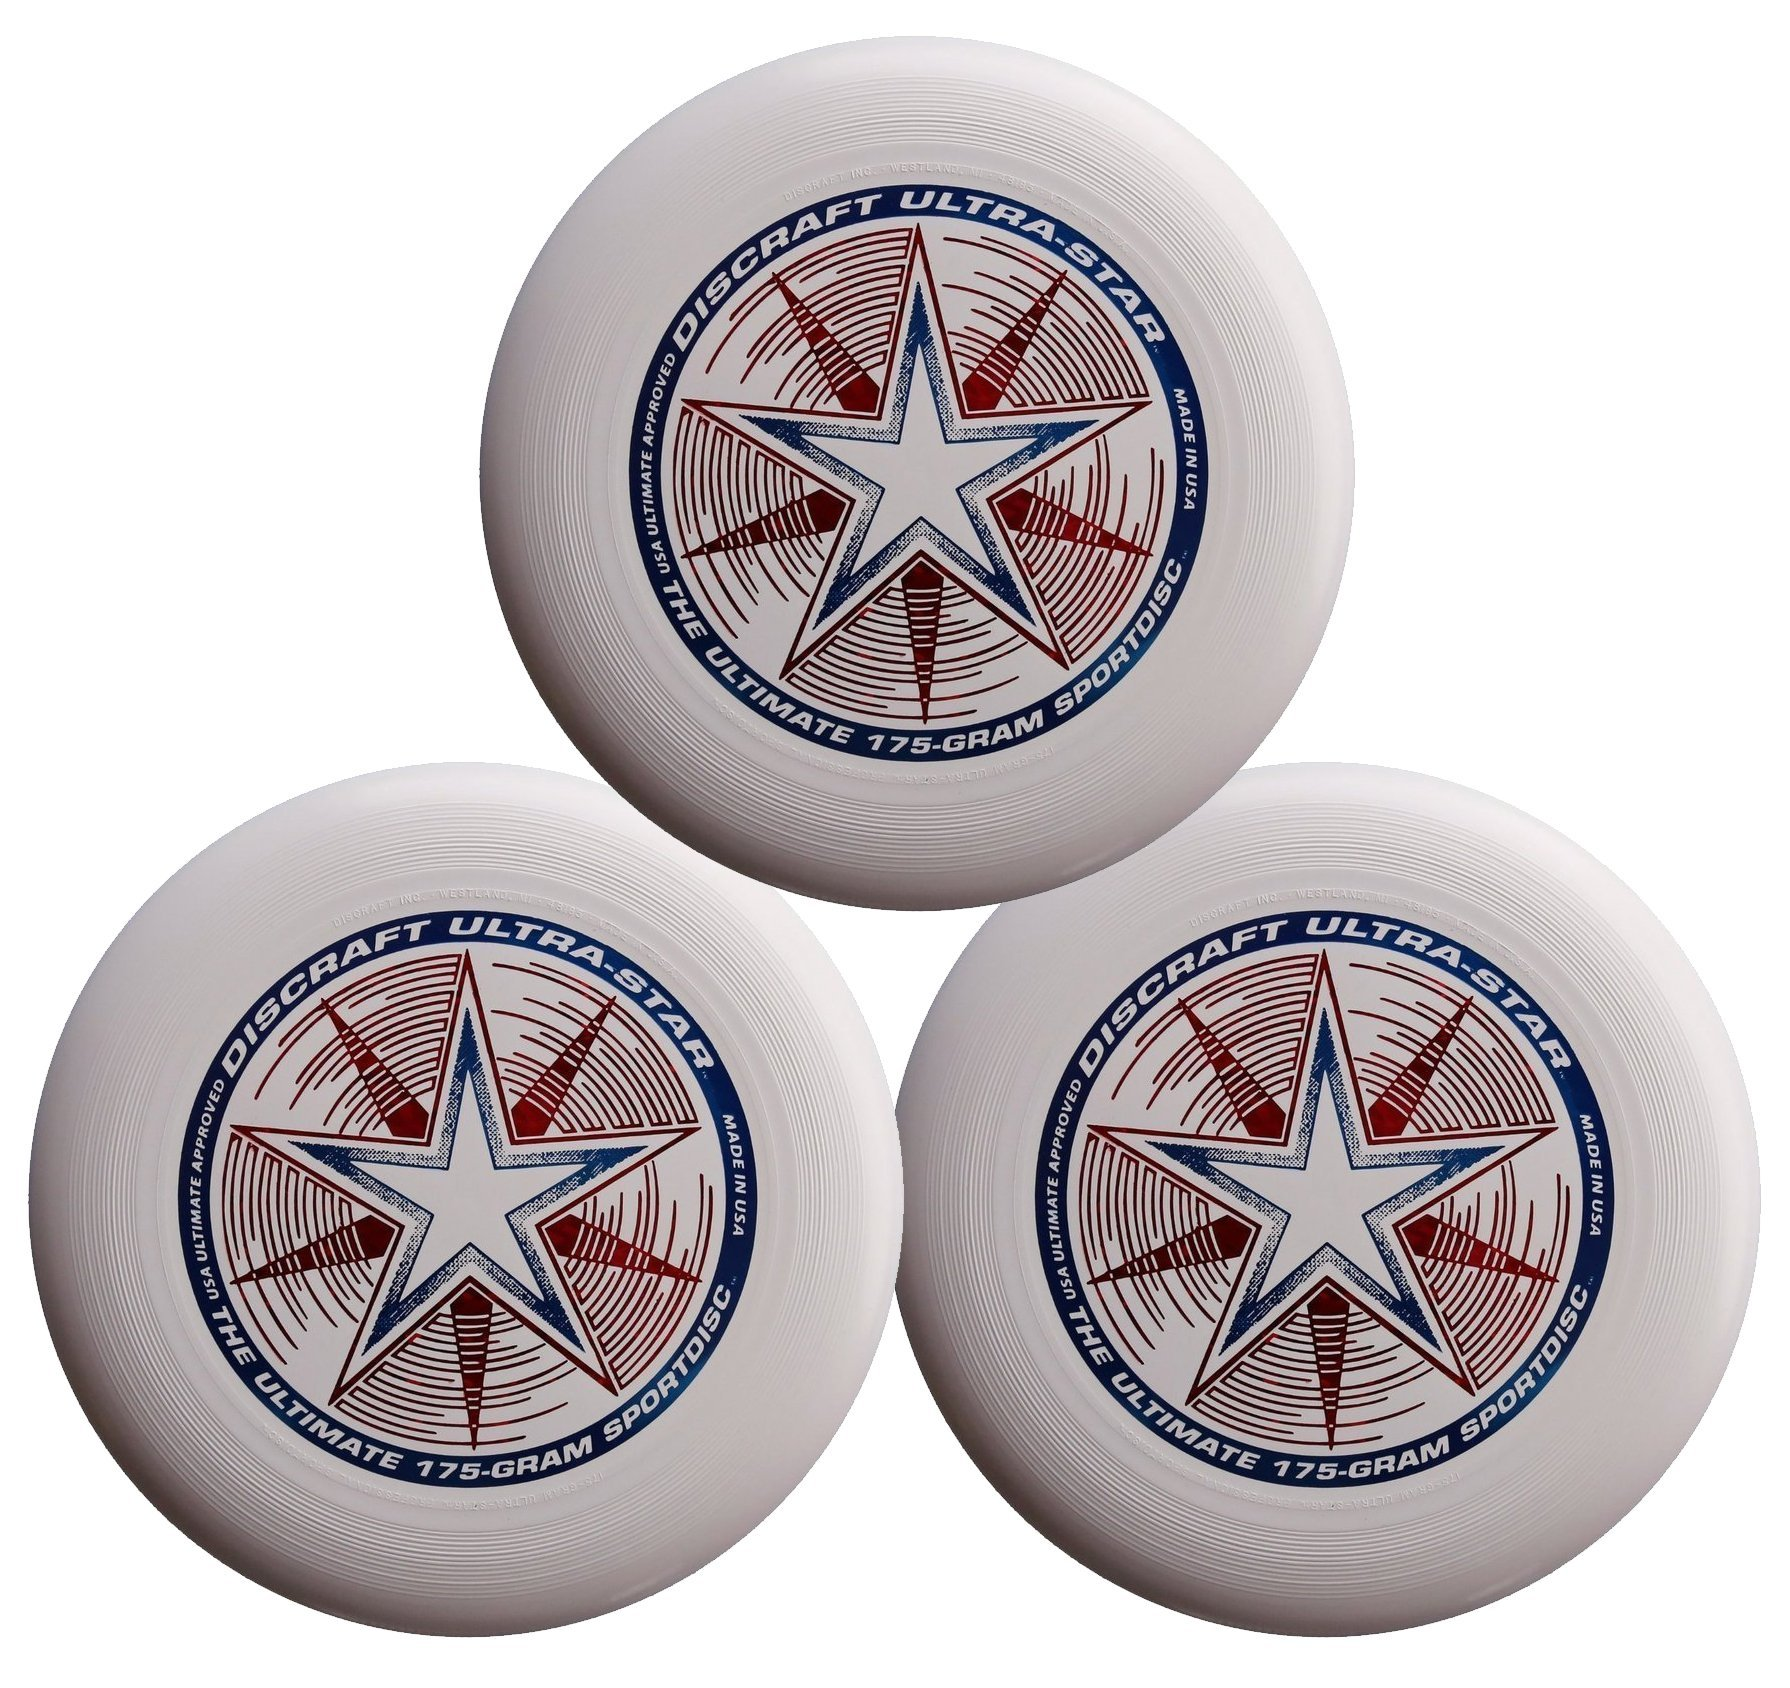 Discraft 175g Ultimate Disc Bundle (3 Discs) White, White & White by Discraft